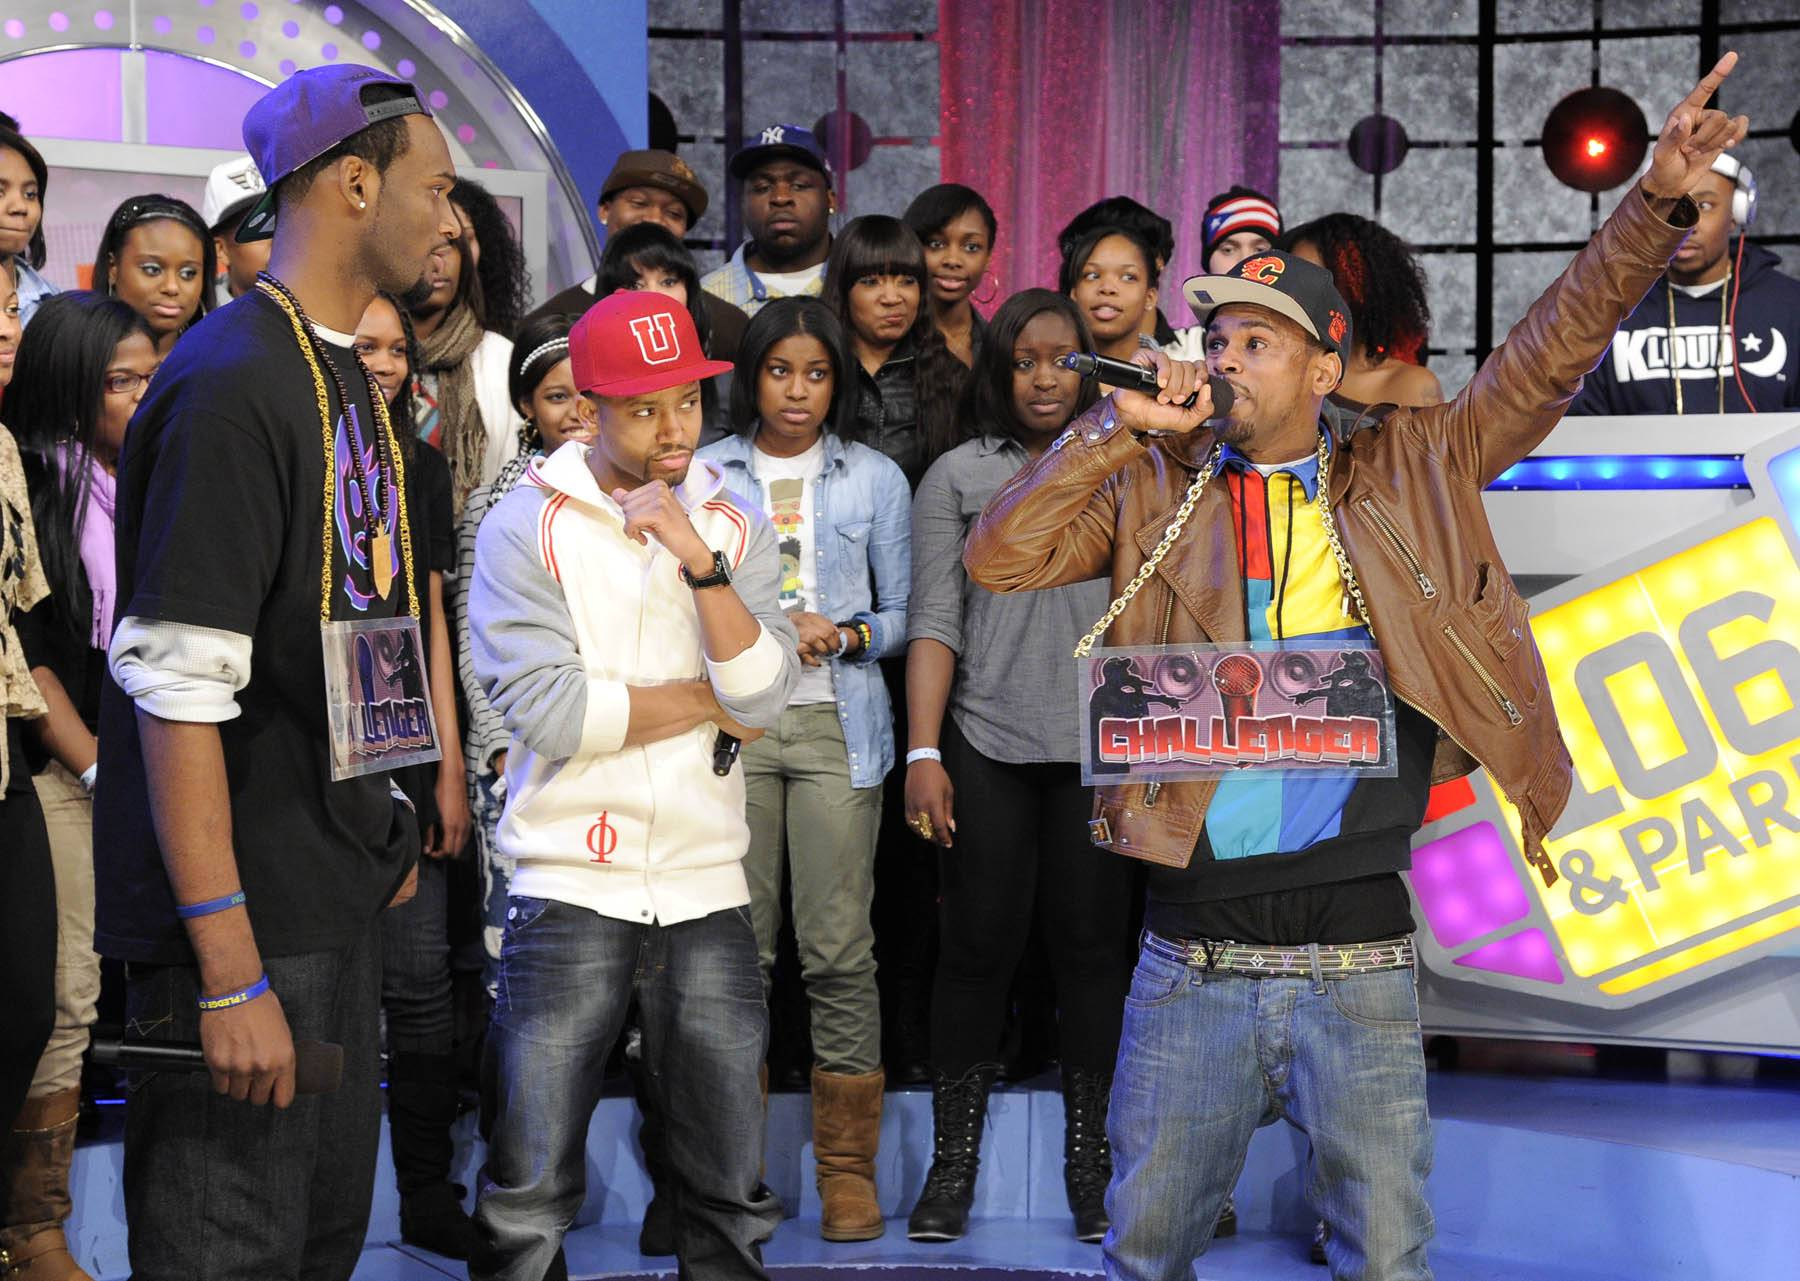 Hands Up - Freestyle Friday challenger J Dose battles at 106 & Park, January 27, 2012. (Photo: John Ricard / BET)